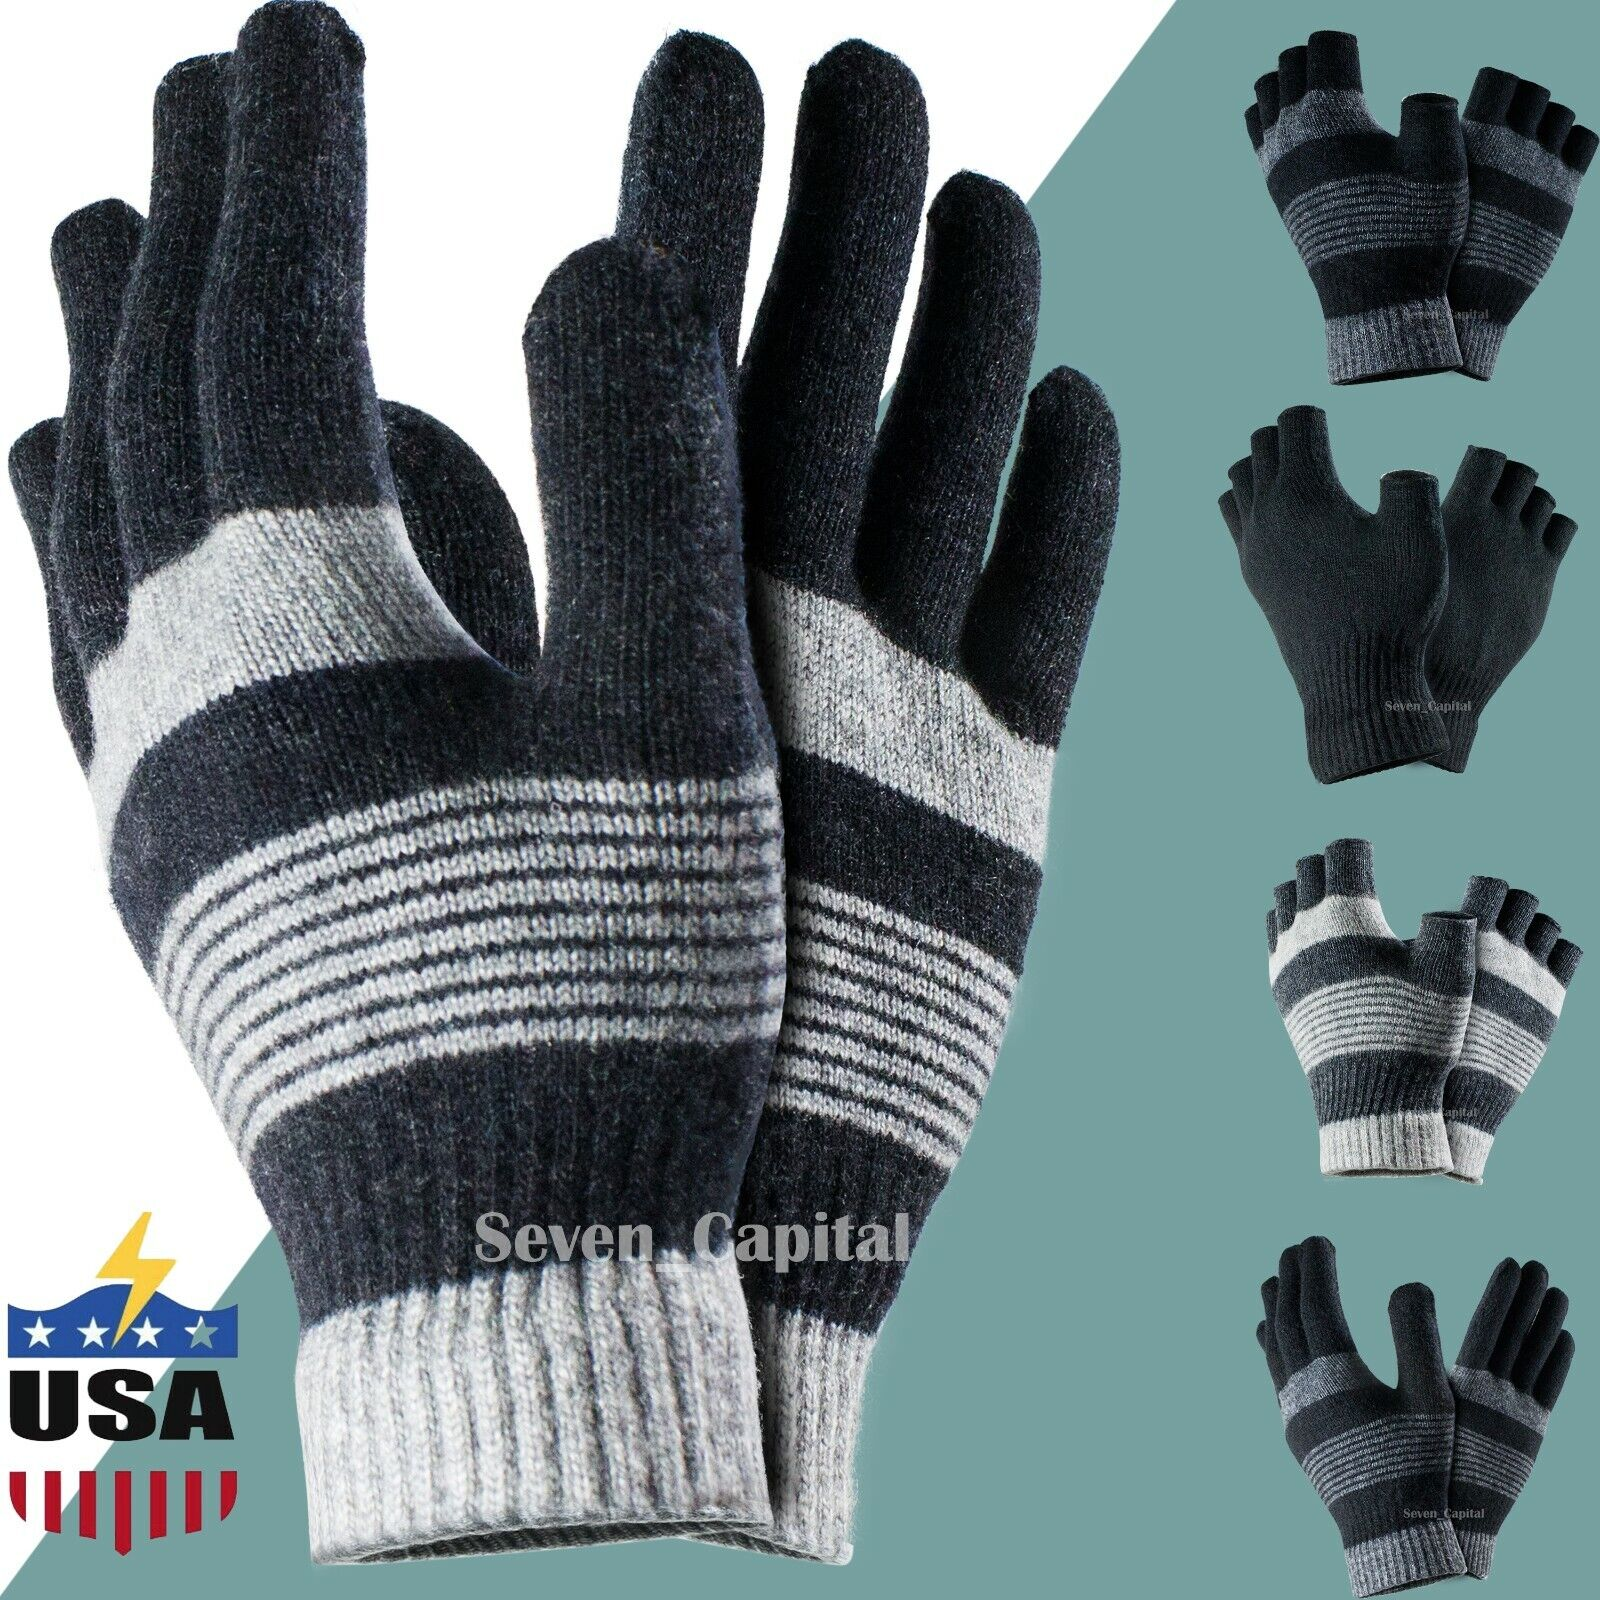 MEN/'S /& LADIES BLACK WARM THERMAL GLOVES STRETCHY KNITTED WINTER OUTDOOR SKIING